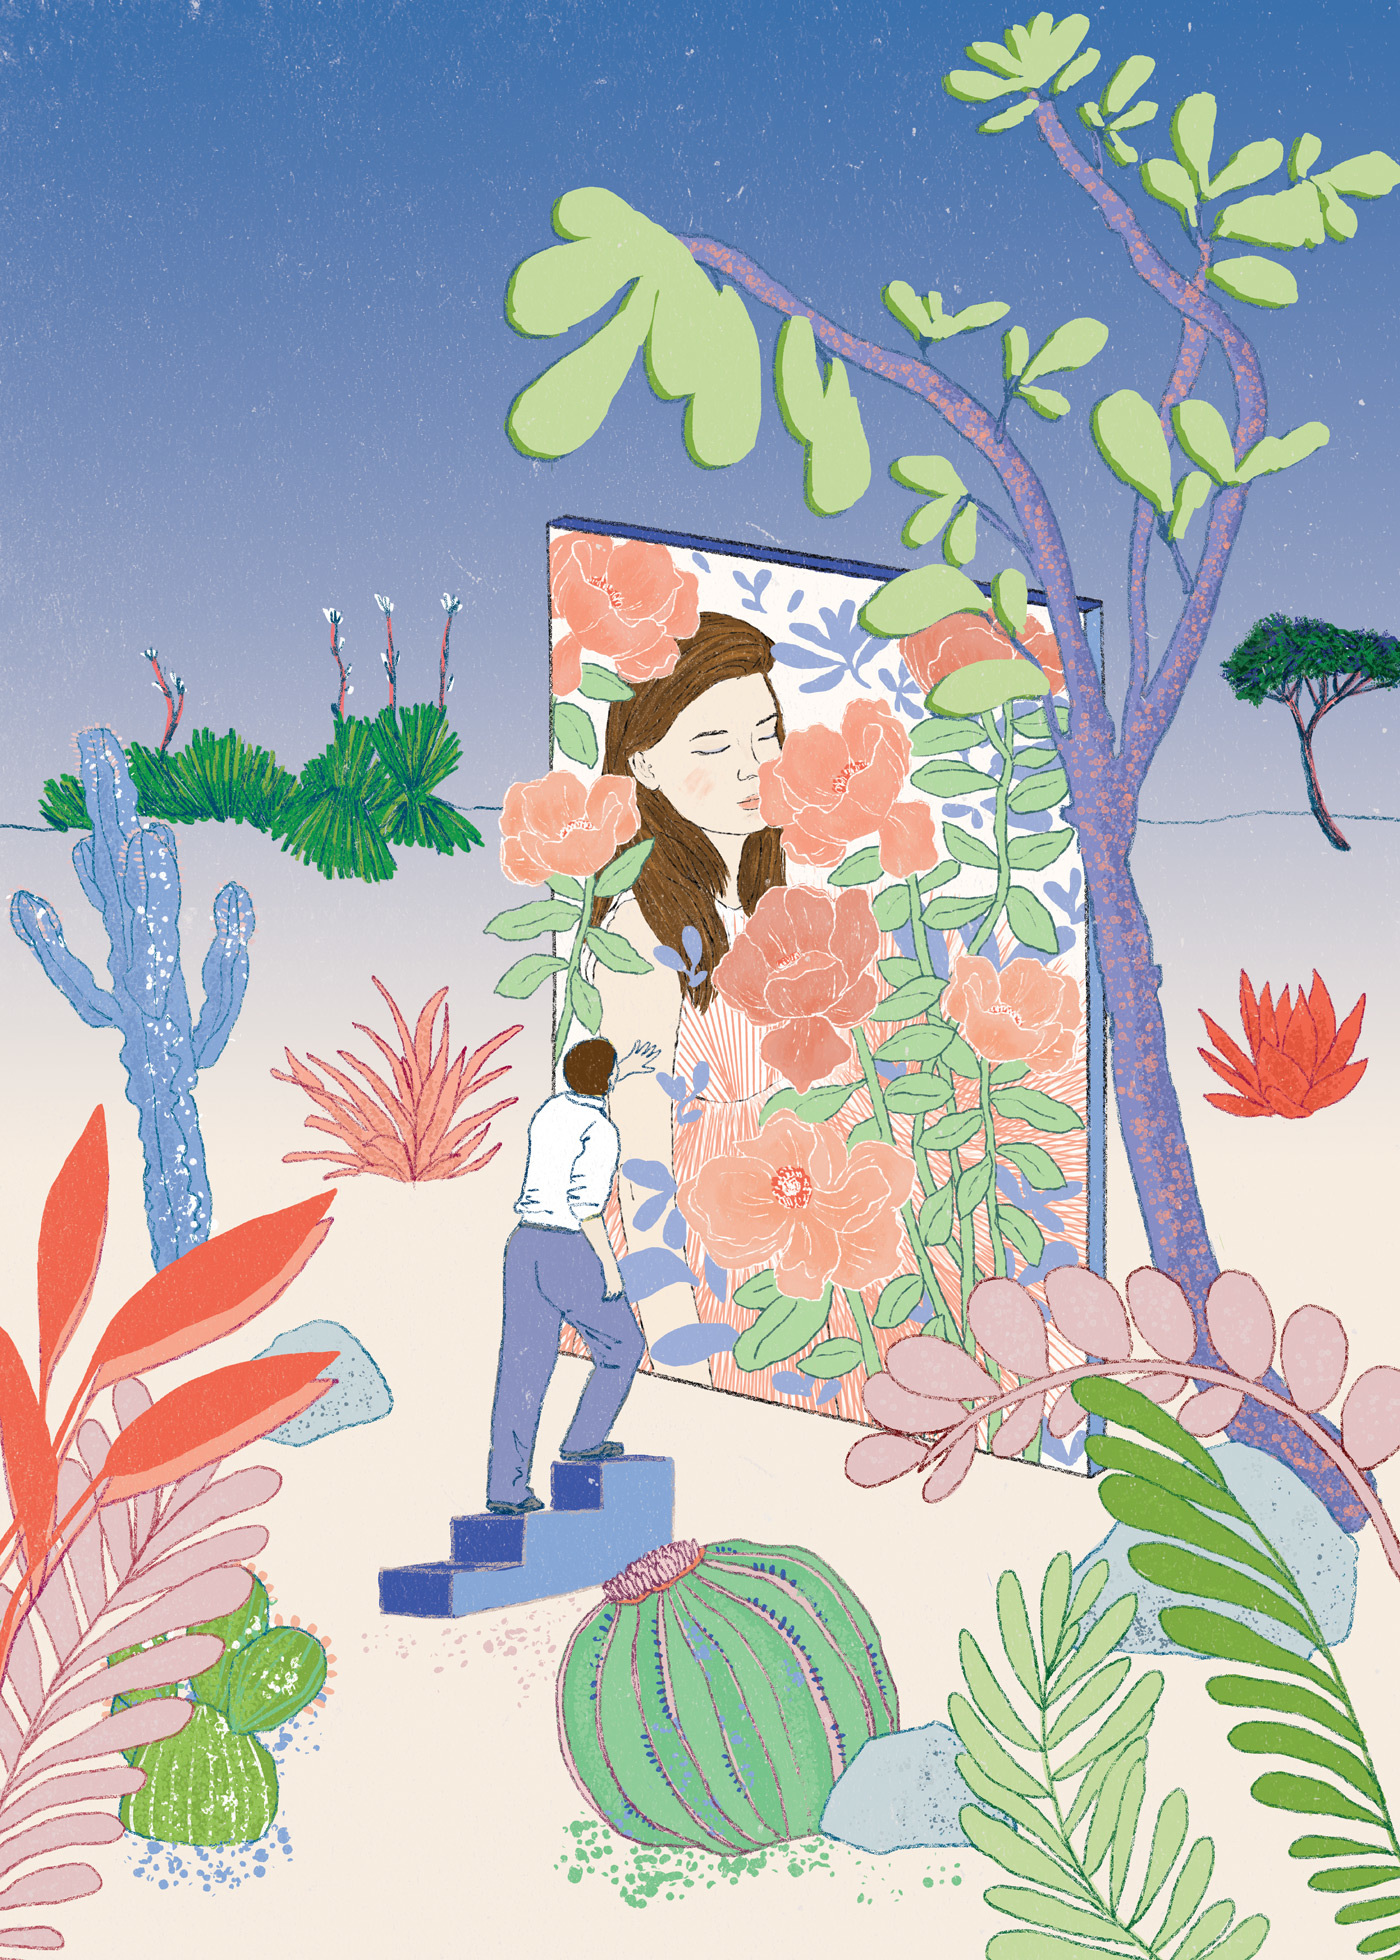 Whimsical Digital Illustrations Inspired by Nature